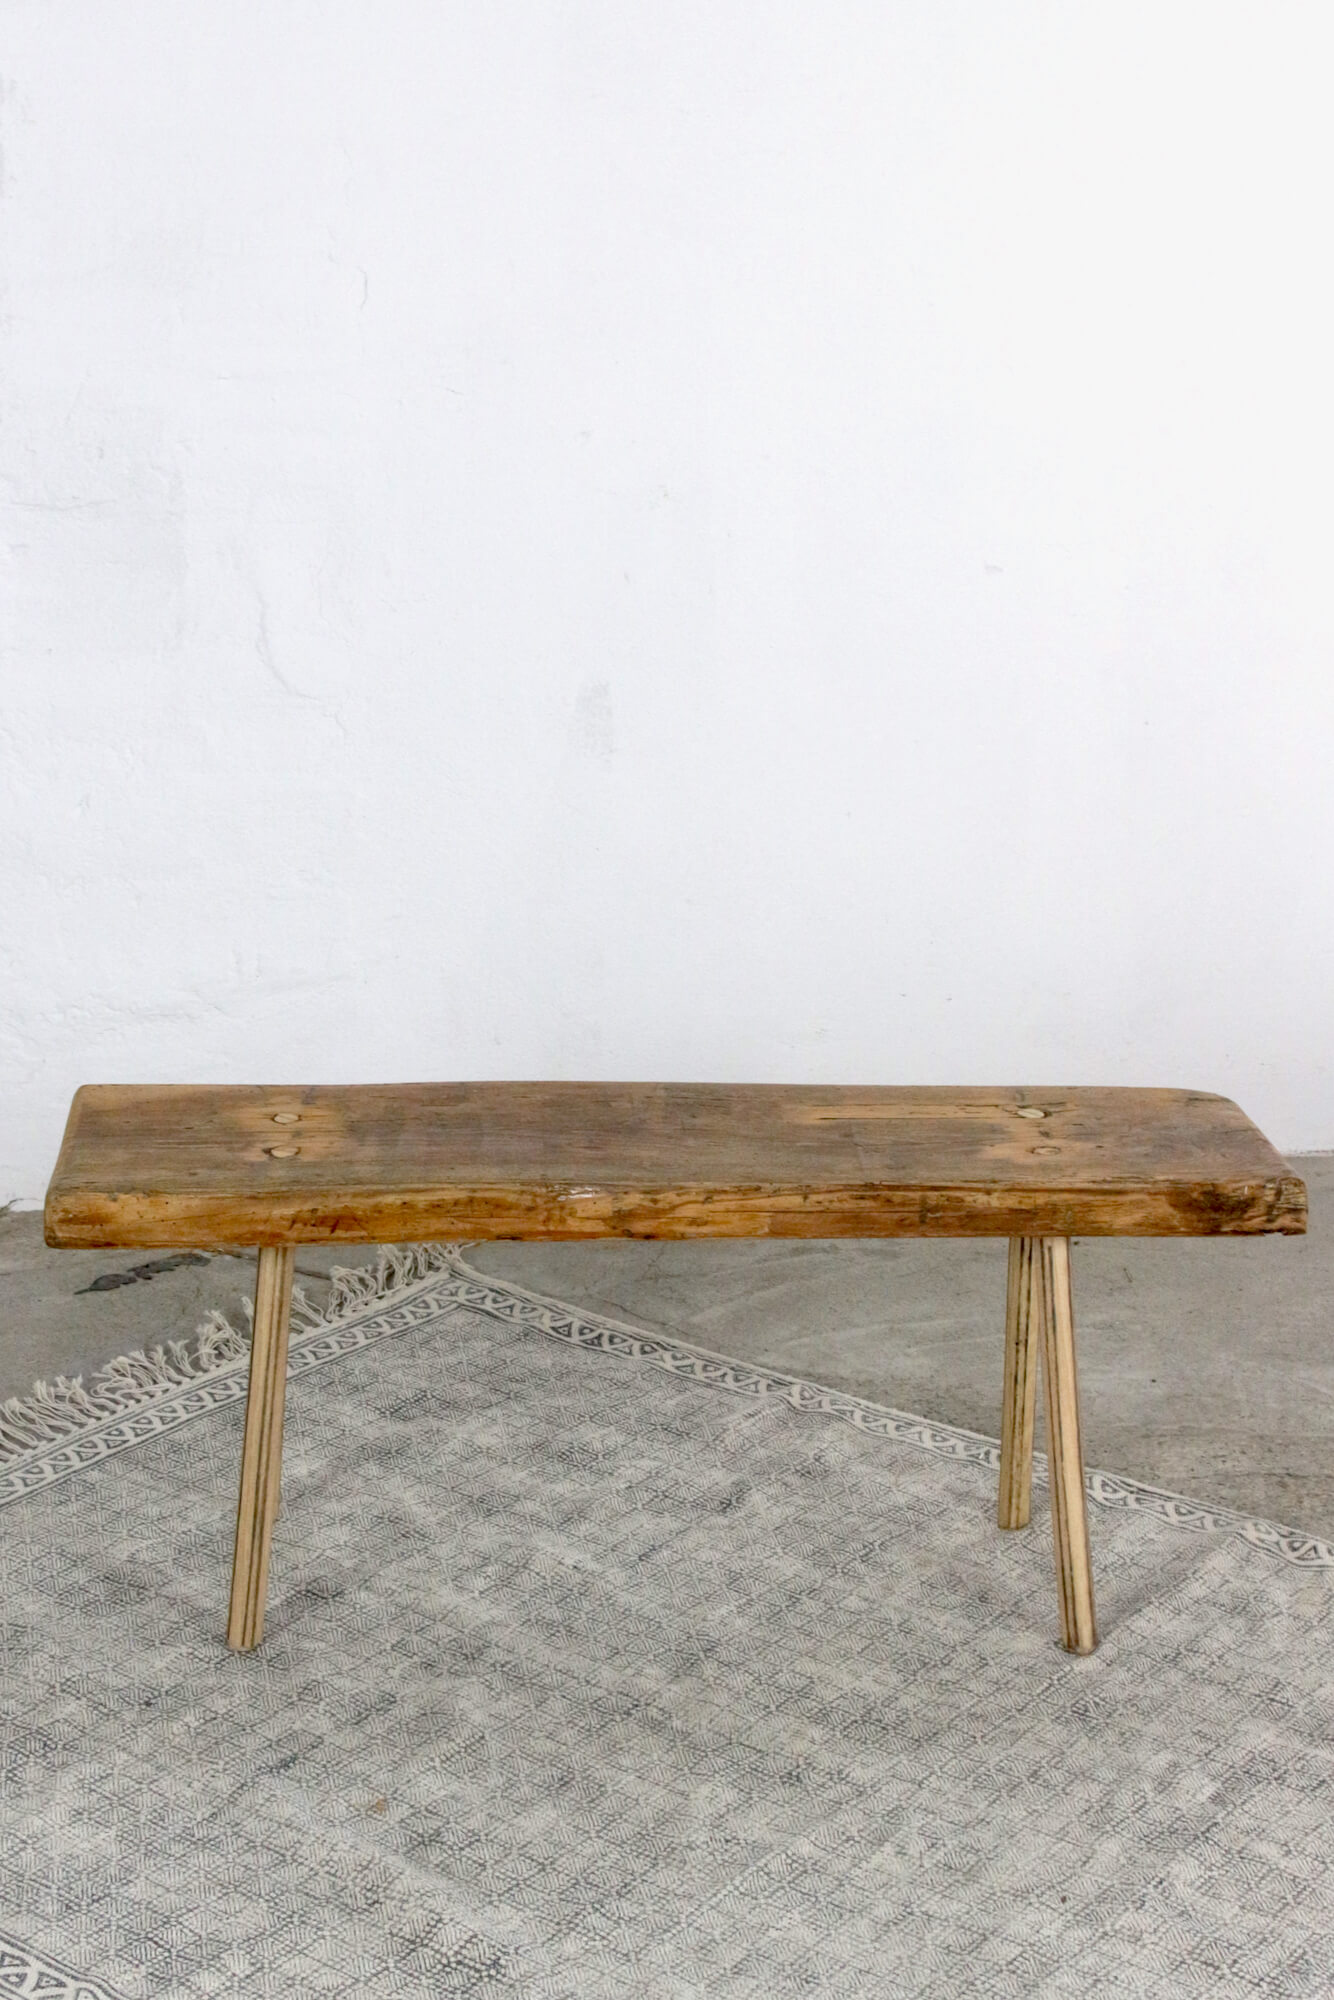 Alte Holzbank mit Charme, 90 cm